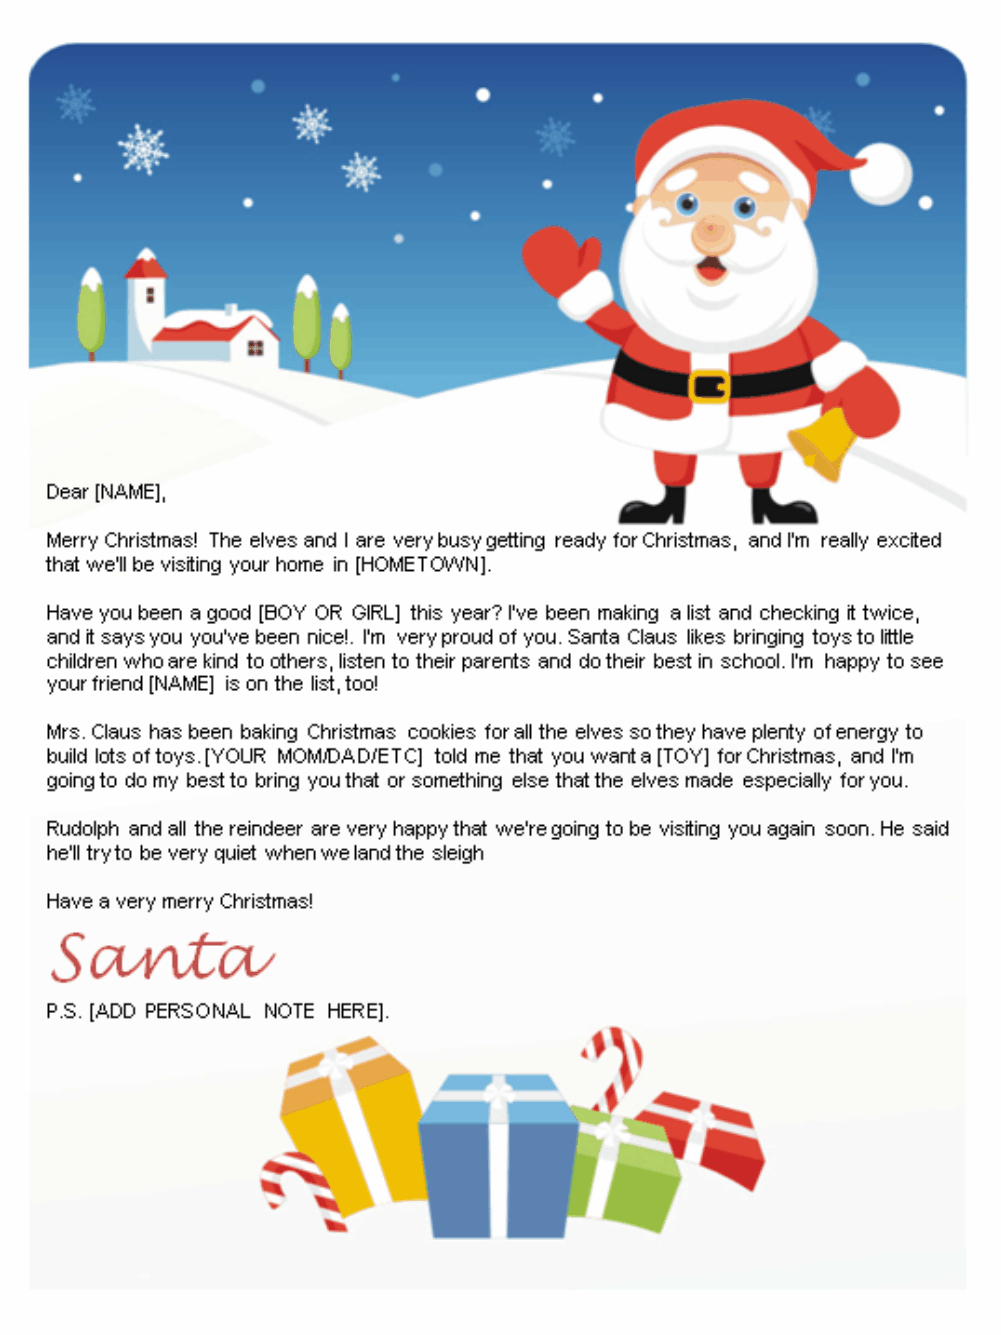 Free Letters From Santa  Santa Letters To Print At Home  Gifts With Free Letters From Santa Template